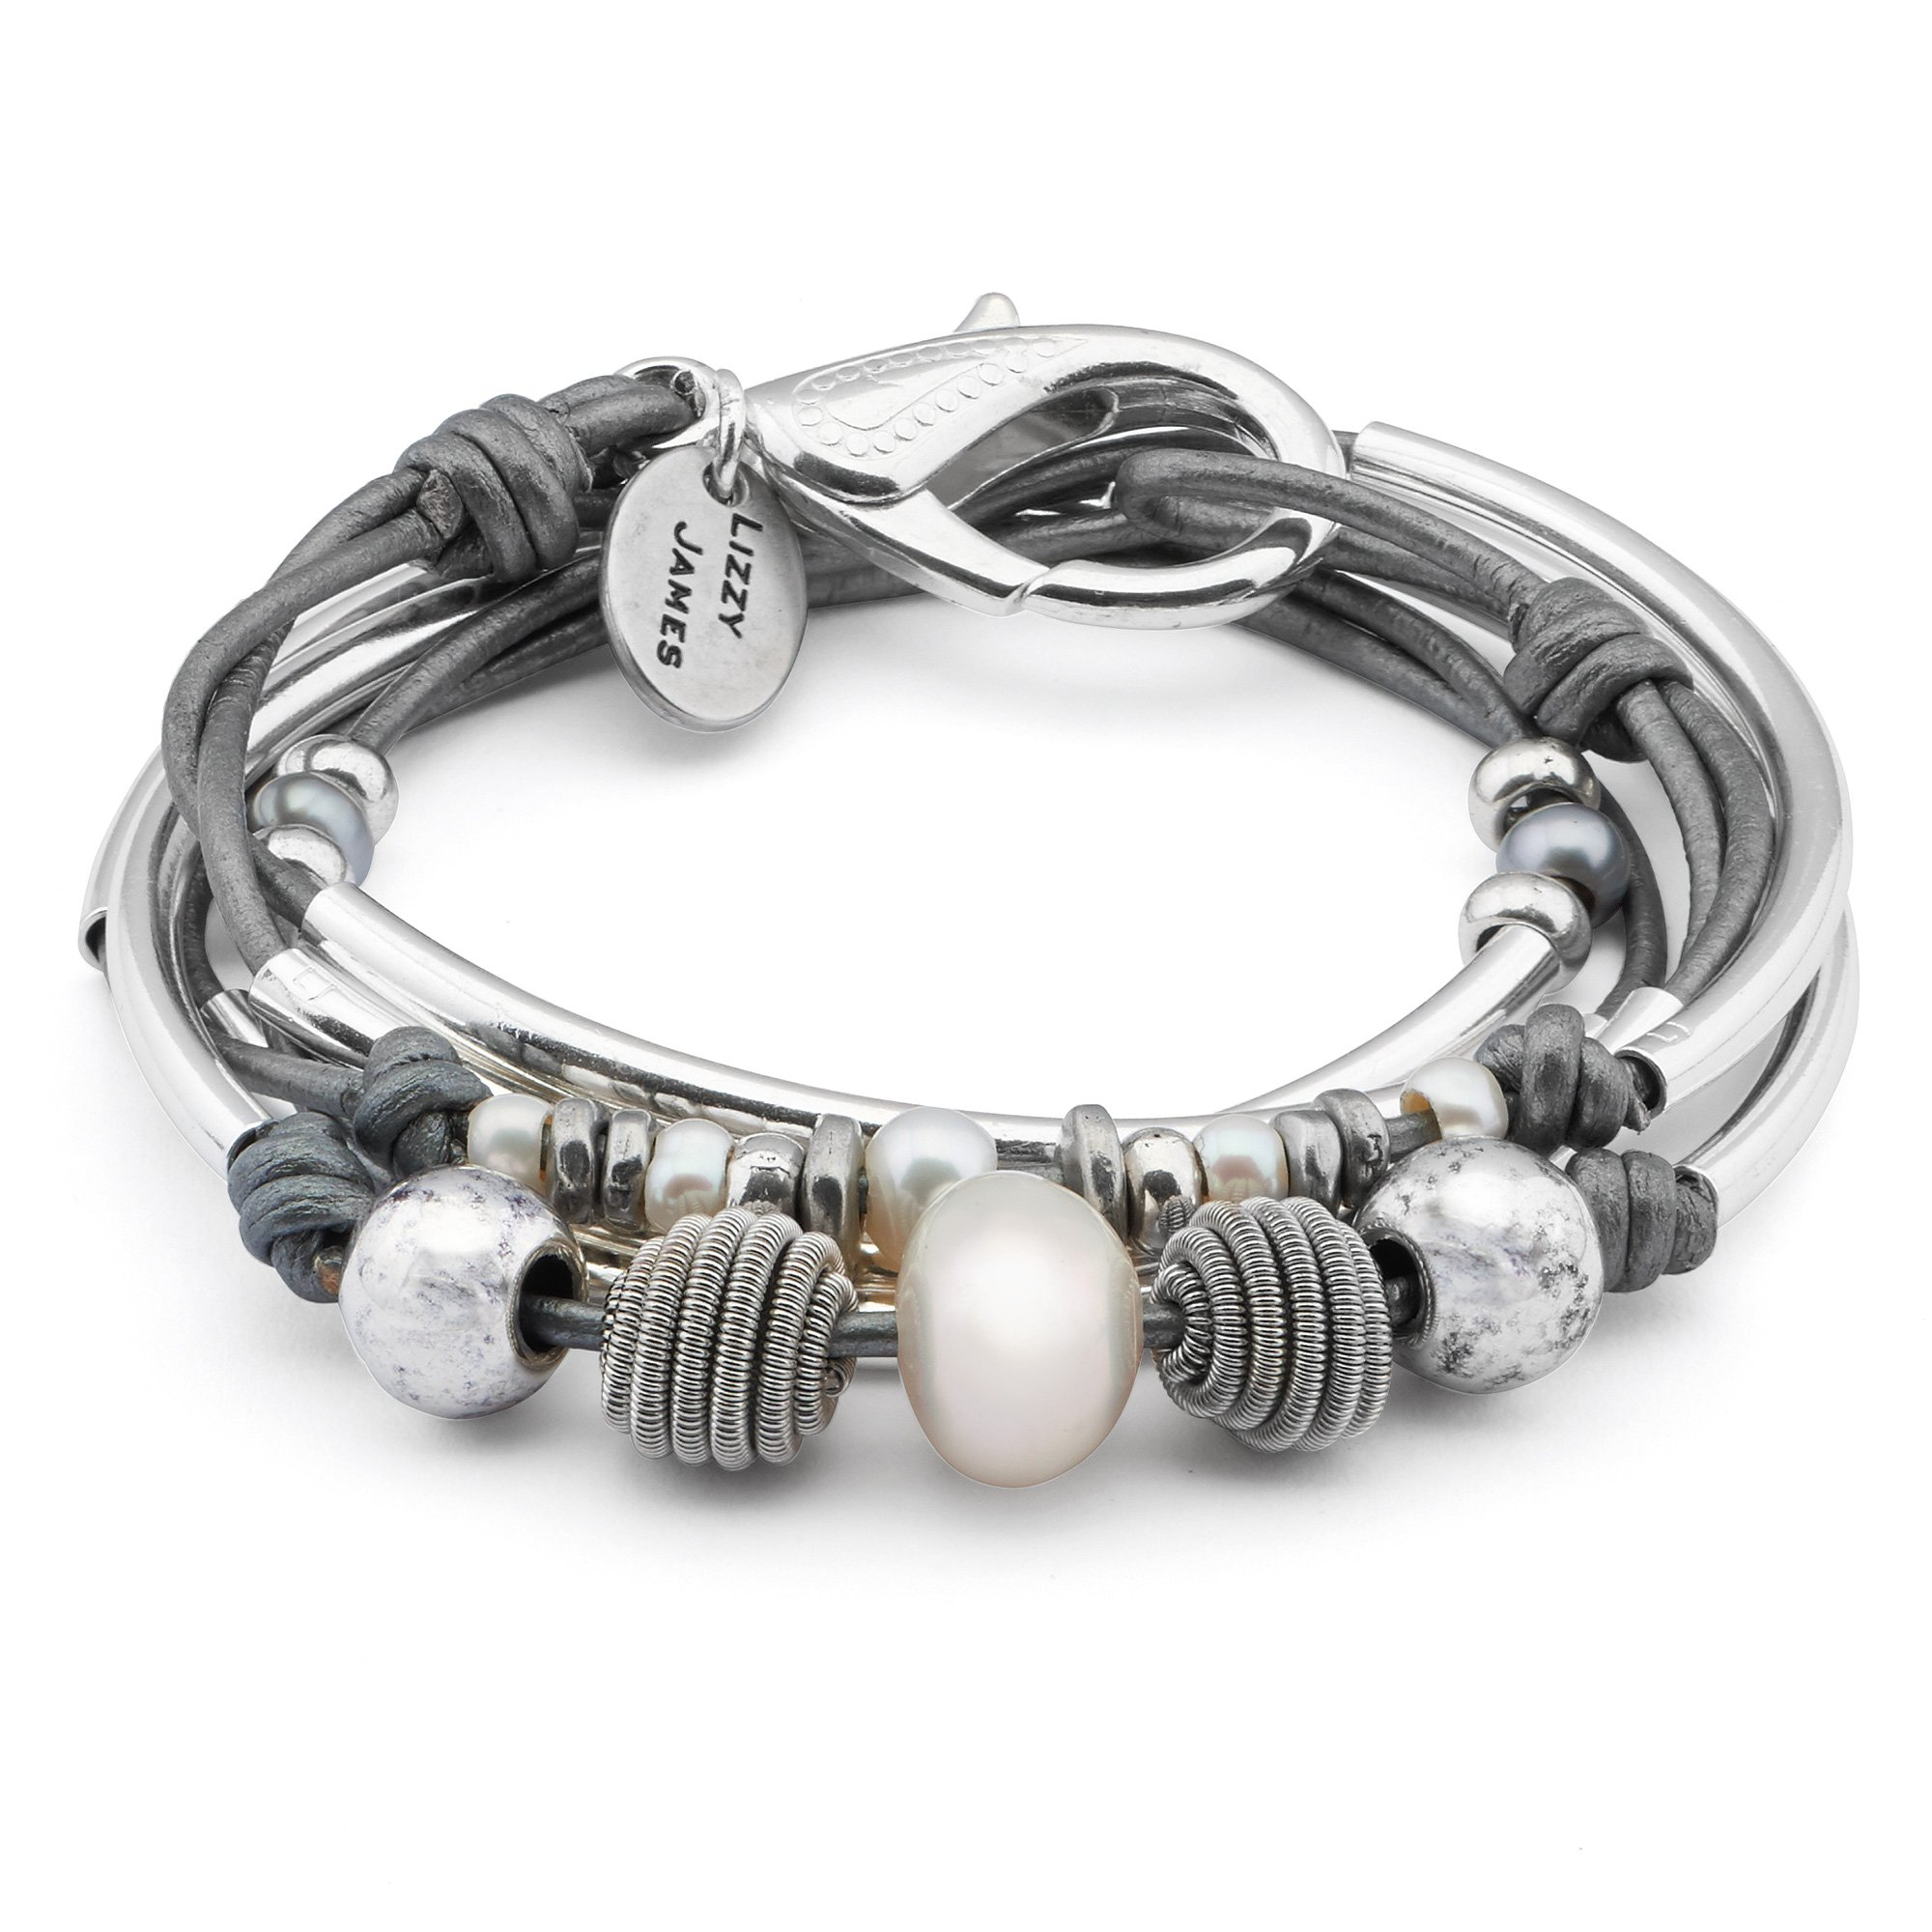 Lizzy James Maribel 2 Strand Wrap Bracelet Necklace in Silver Plate and Metallic Silver Leather with Freshwater Pearl (MEDIUM) by Lizzy James